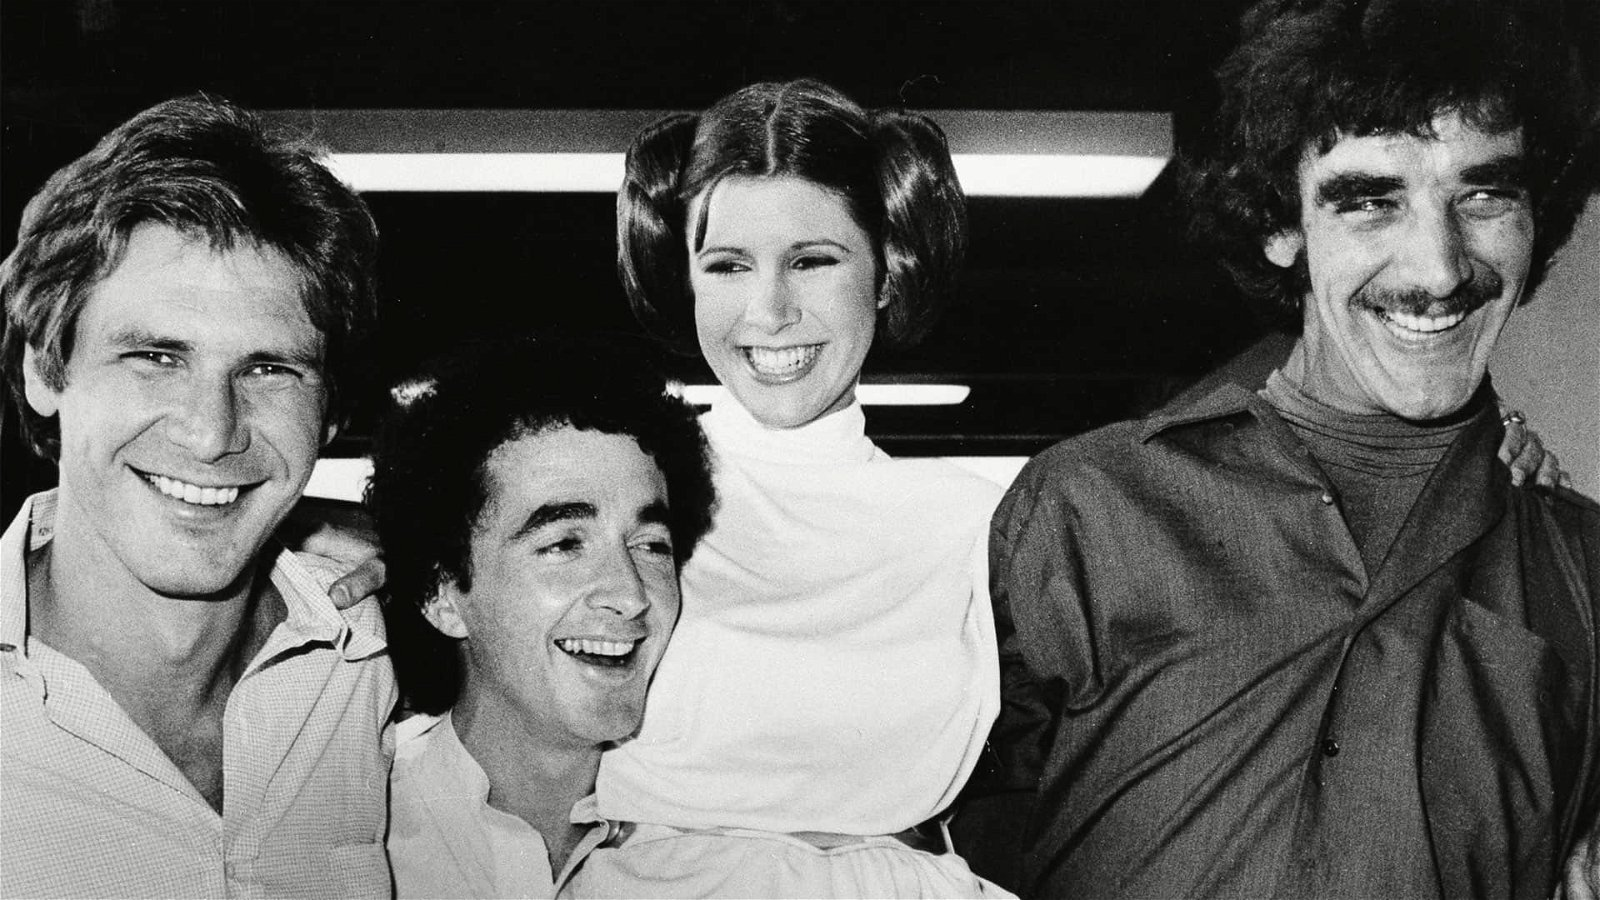 Chewbacca Actor Peter Mayhew Passes At Age 74 1